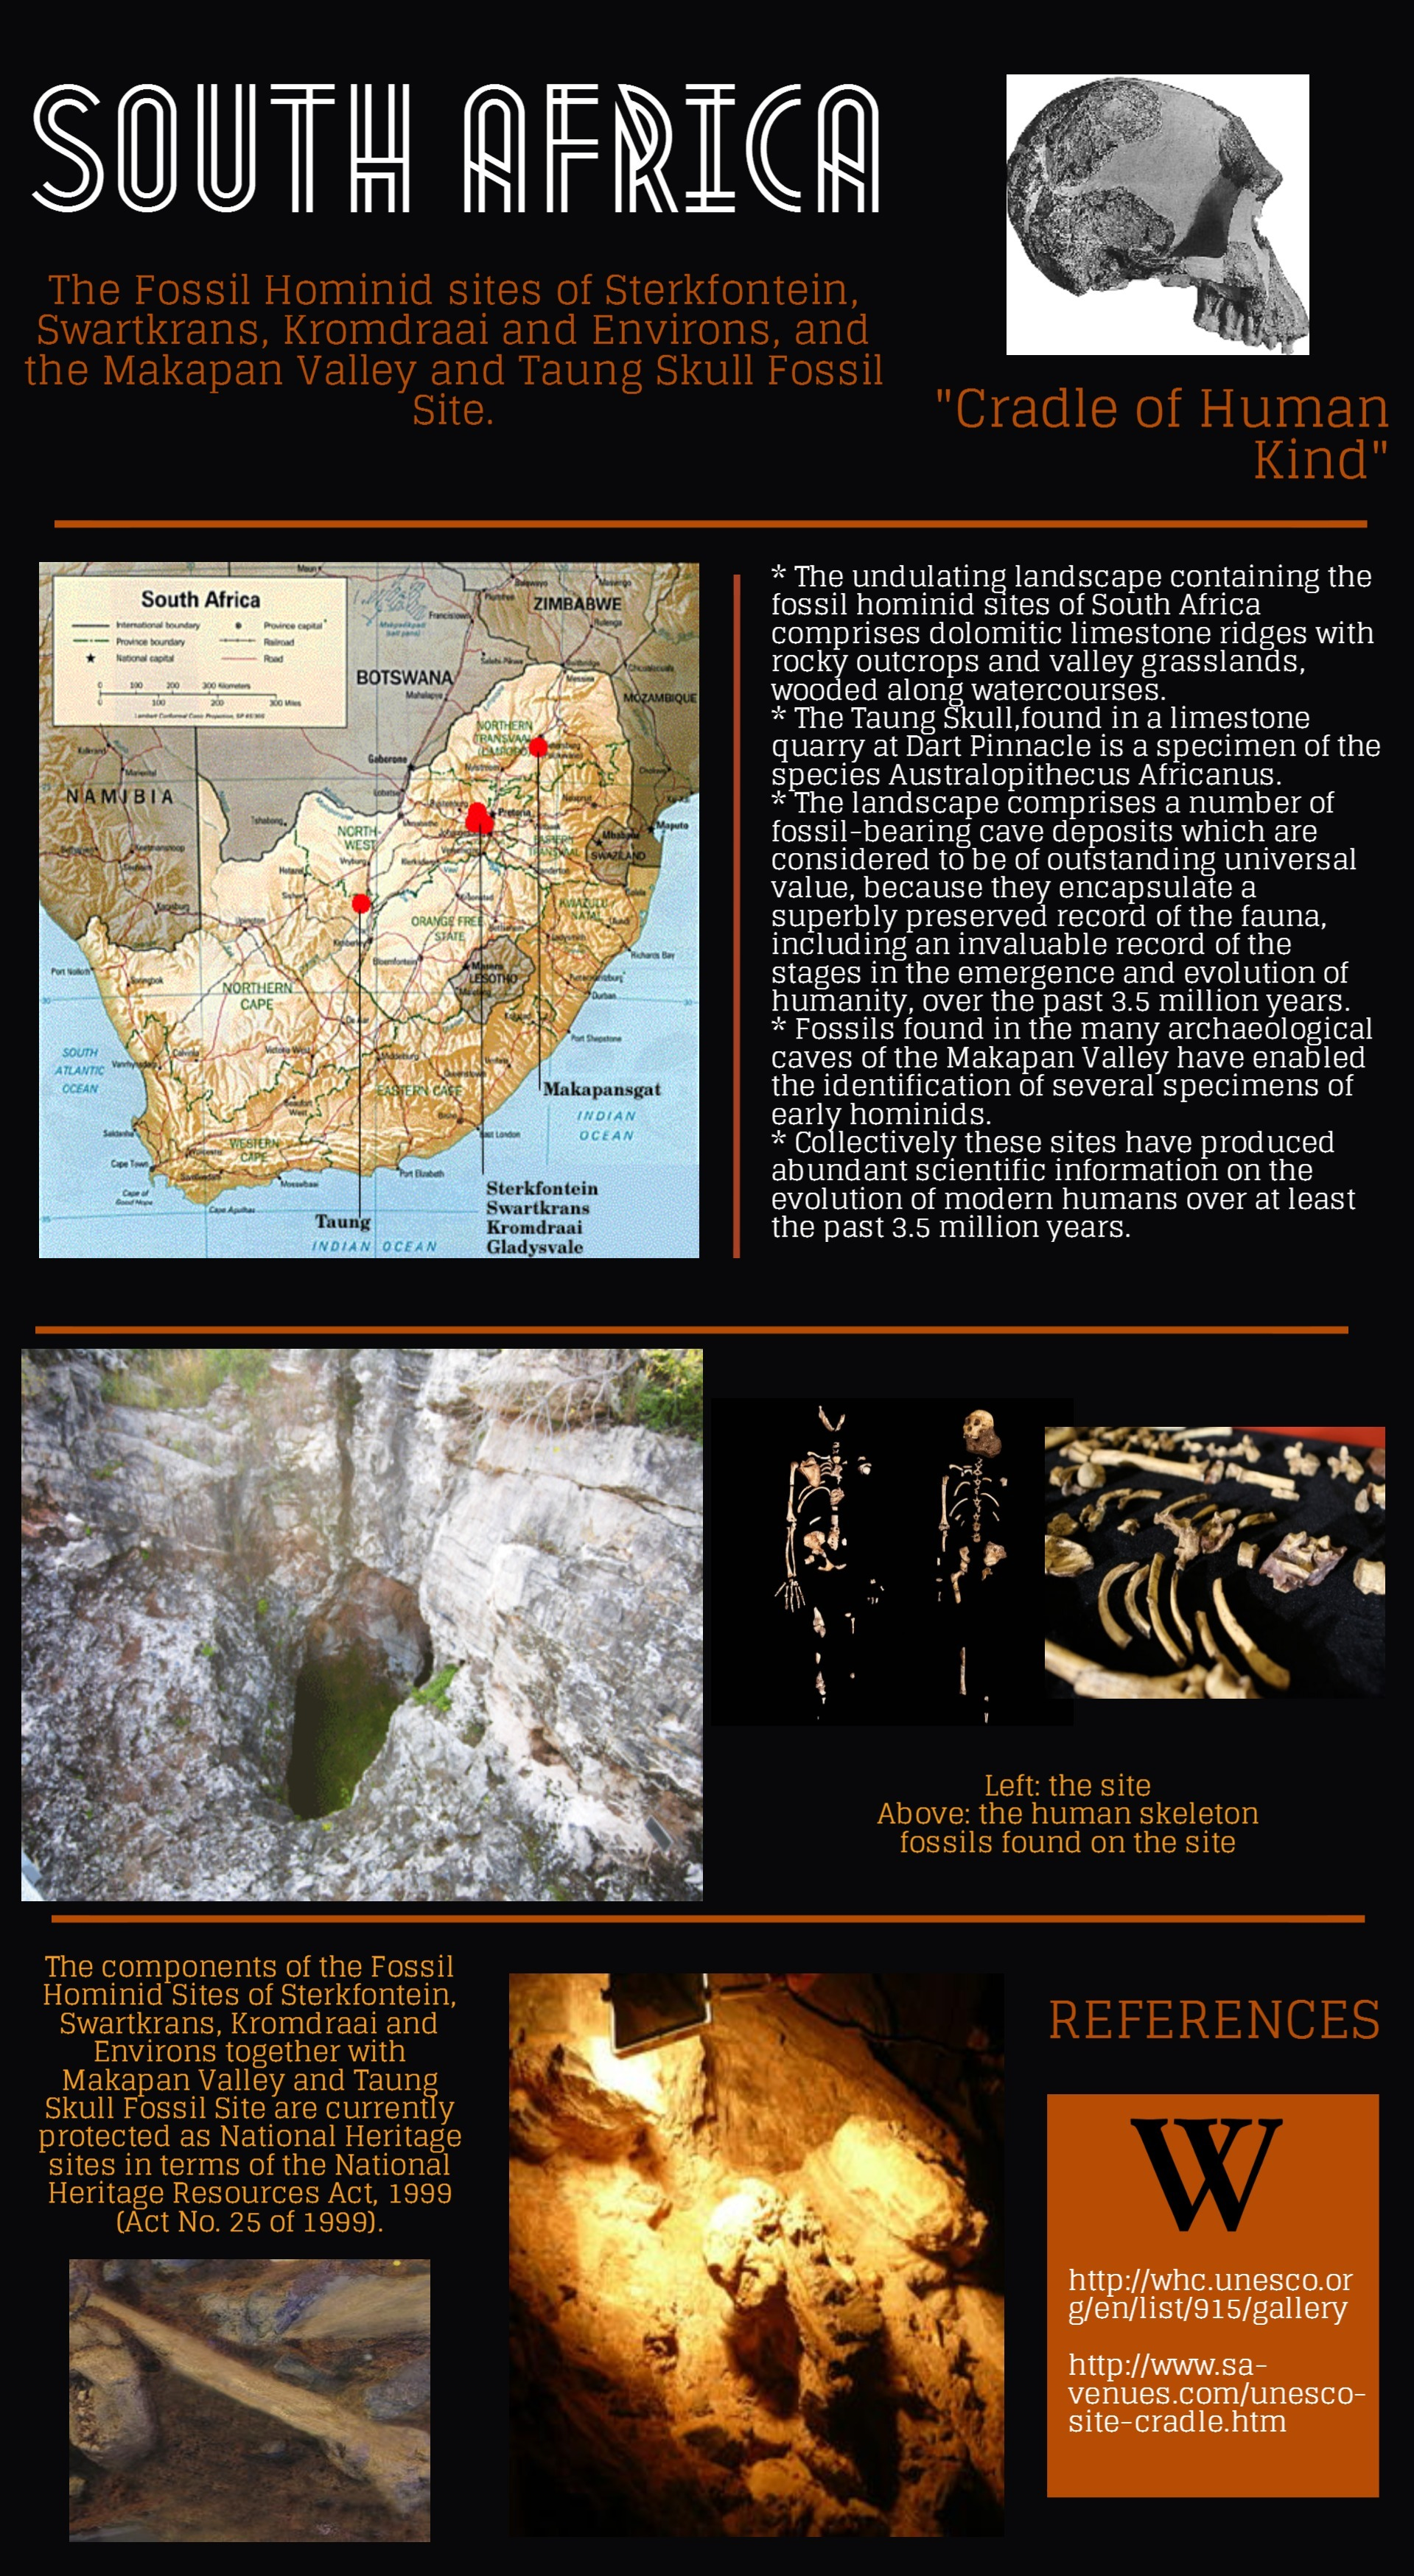 Fossil Hominid sites of South Africa